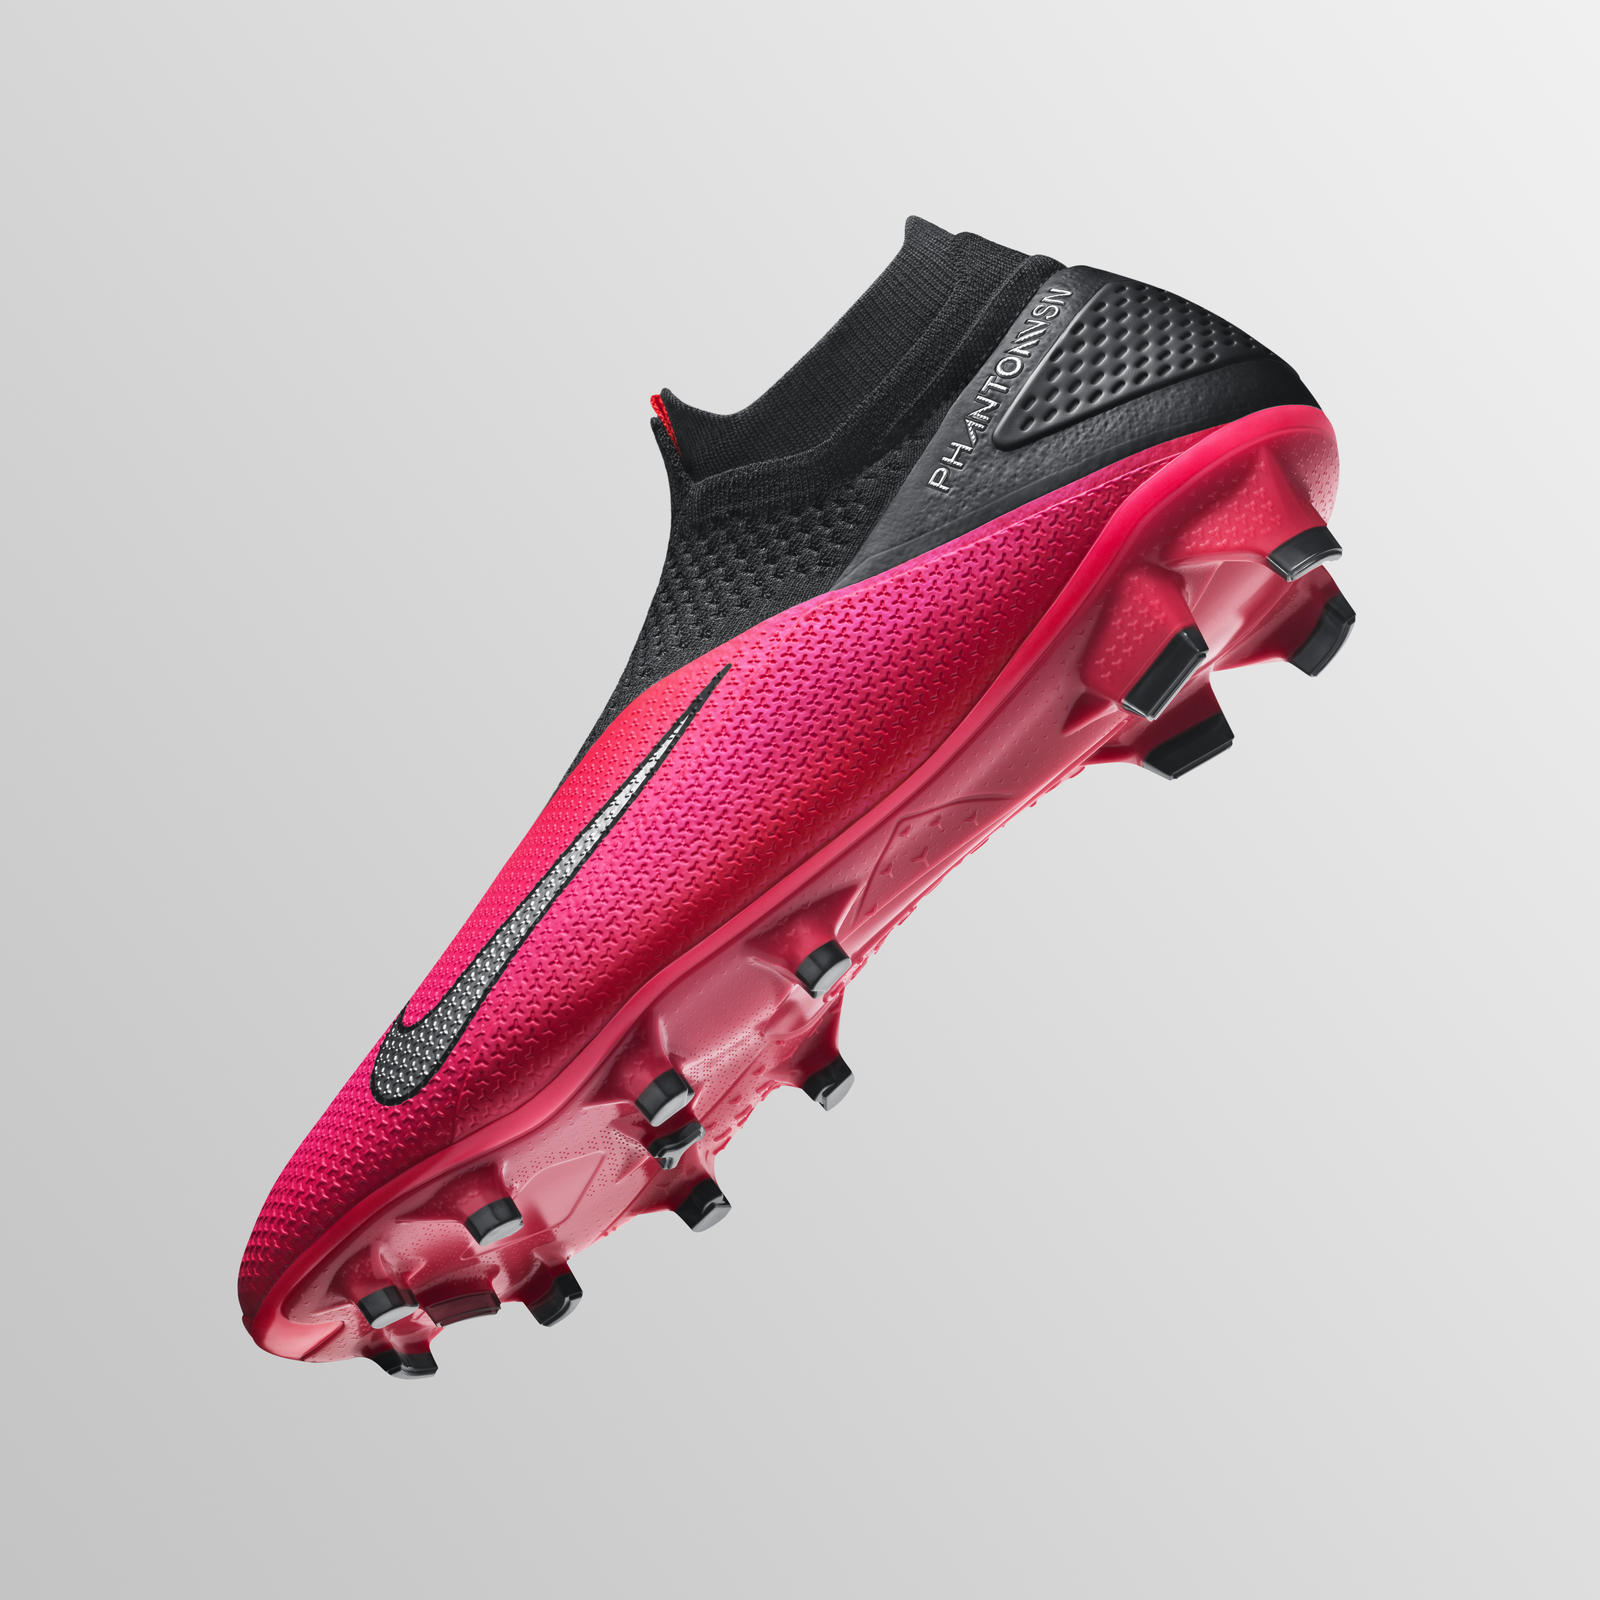 Ângulo do produto Nike Football PhantomVSN 2 Elite FG